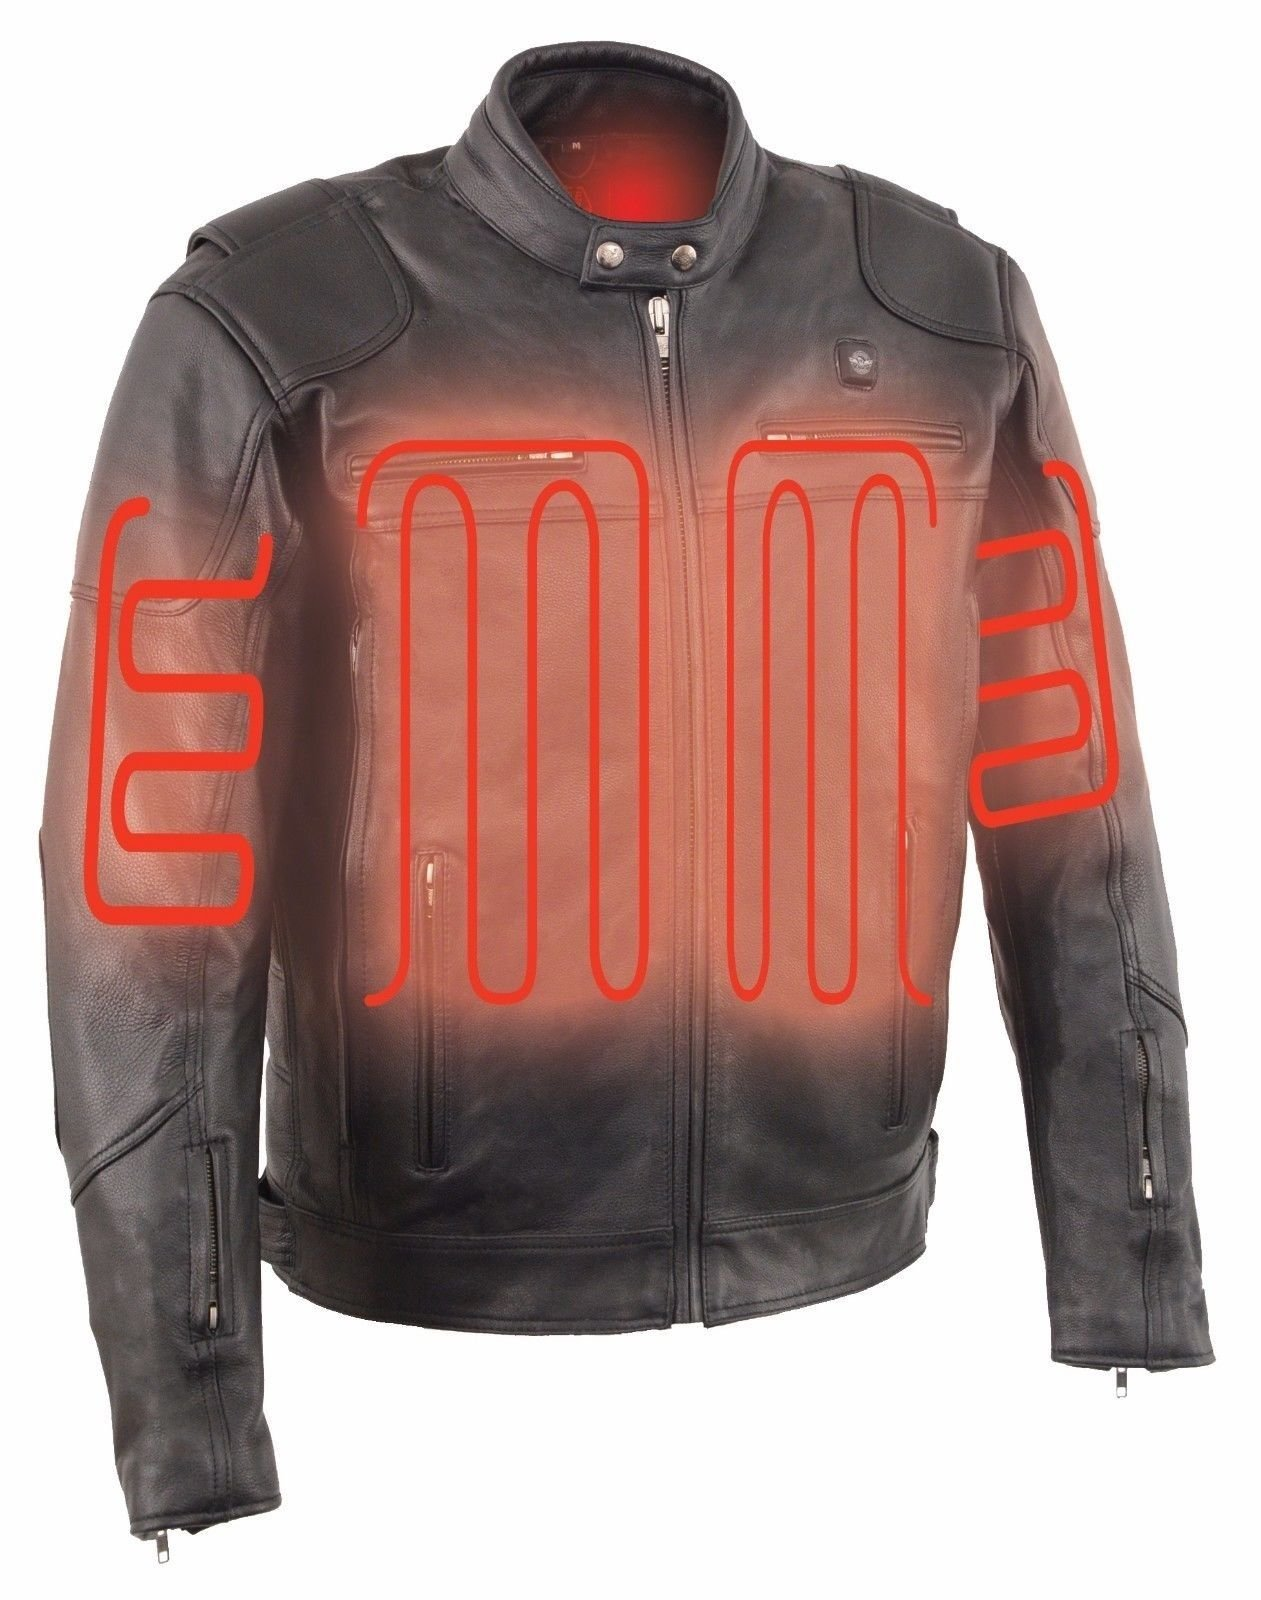 MEN'S VENTED MOTORCYCLE LEATHER SCOOTER JACKET W/ HEATED TECHNOLOGY (L Regular)